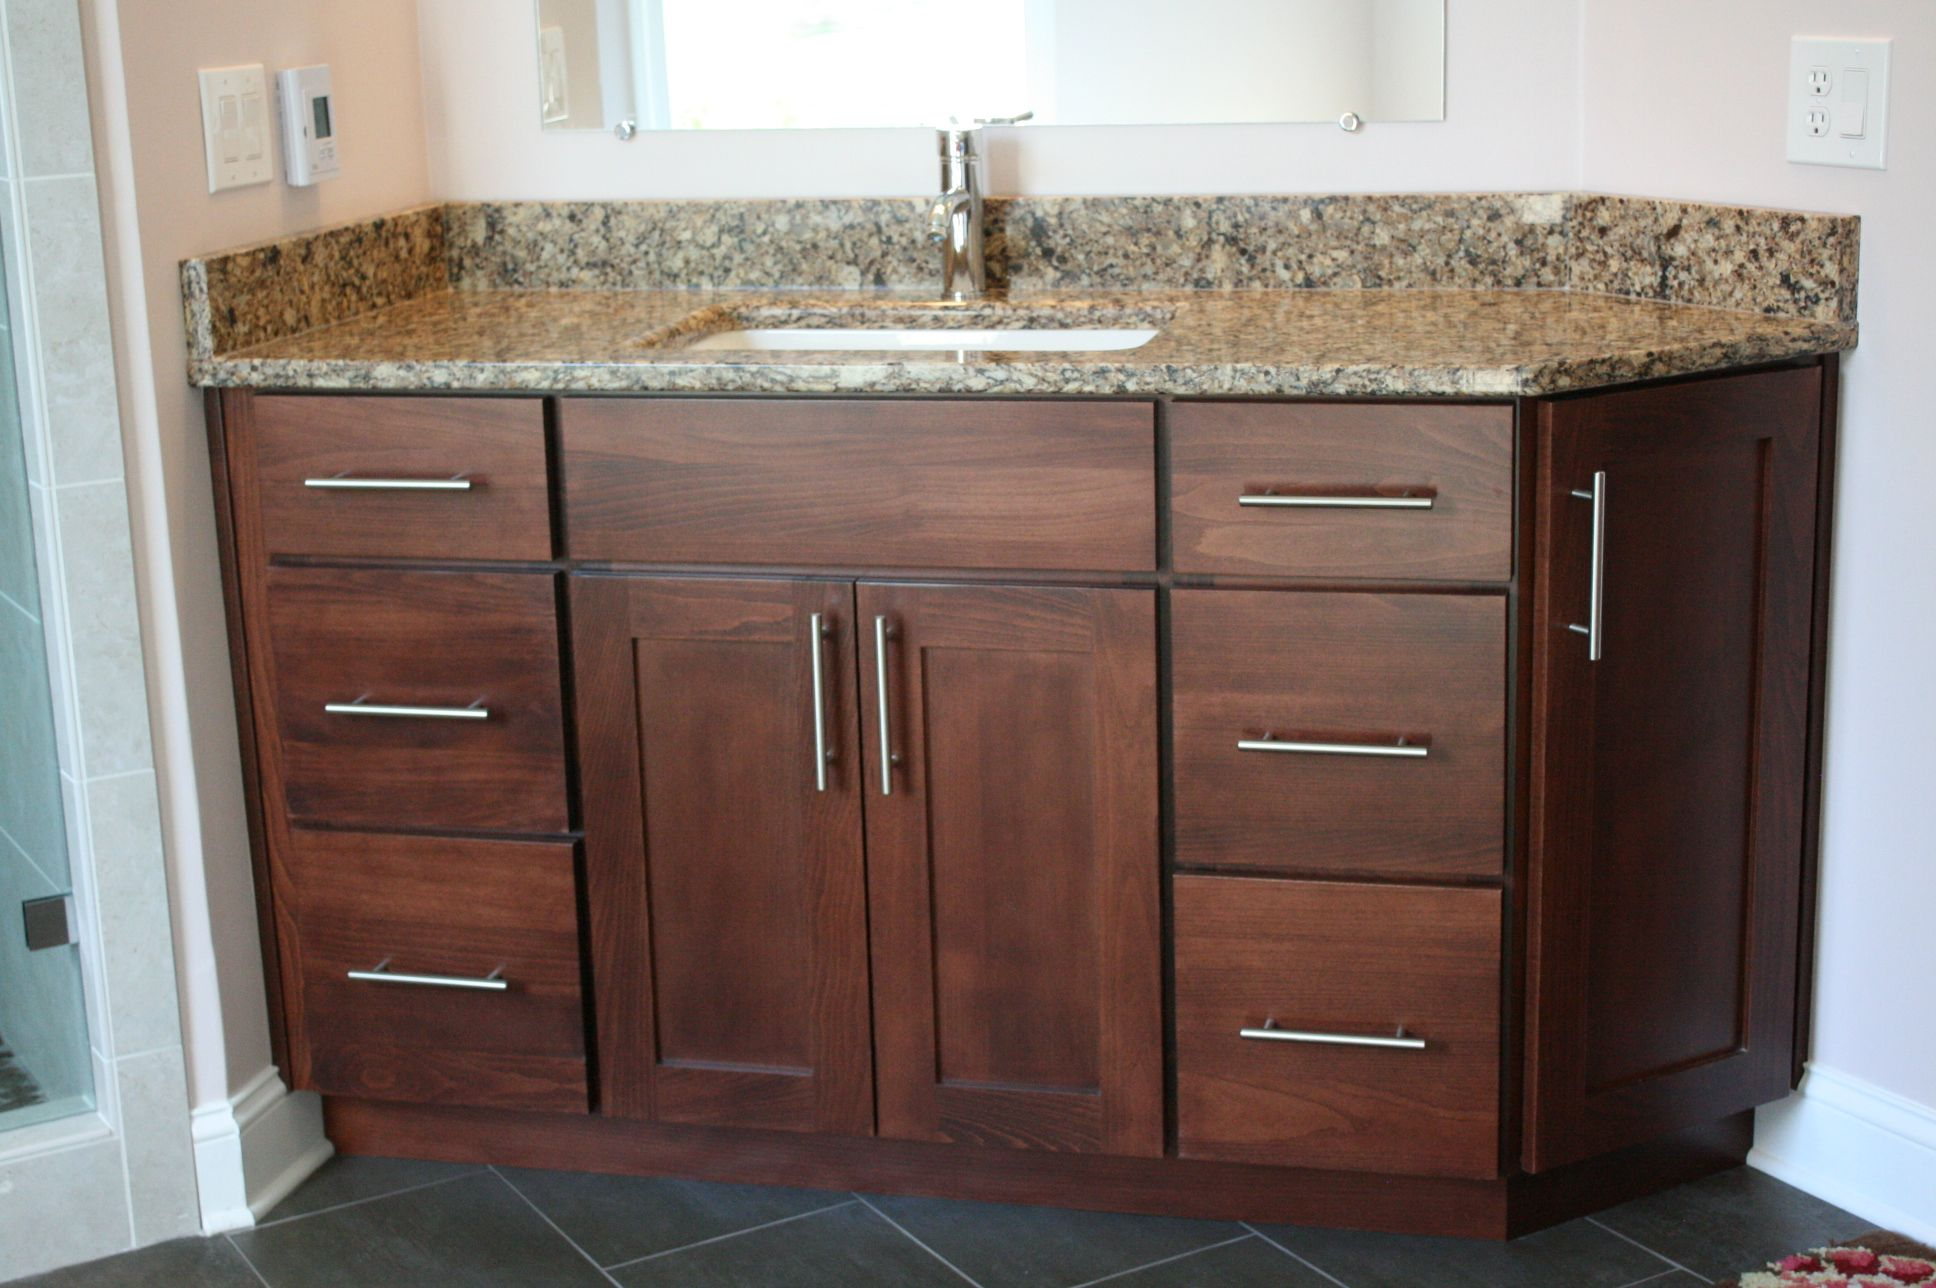 Koch Classic Cabinetry. Savannah door style, Beech wood, Brandy ...